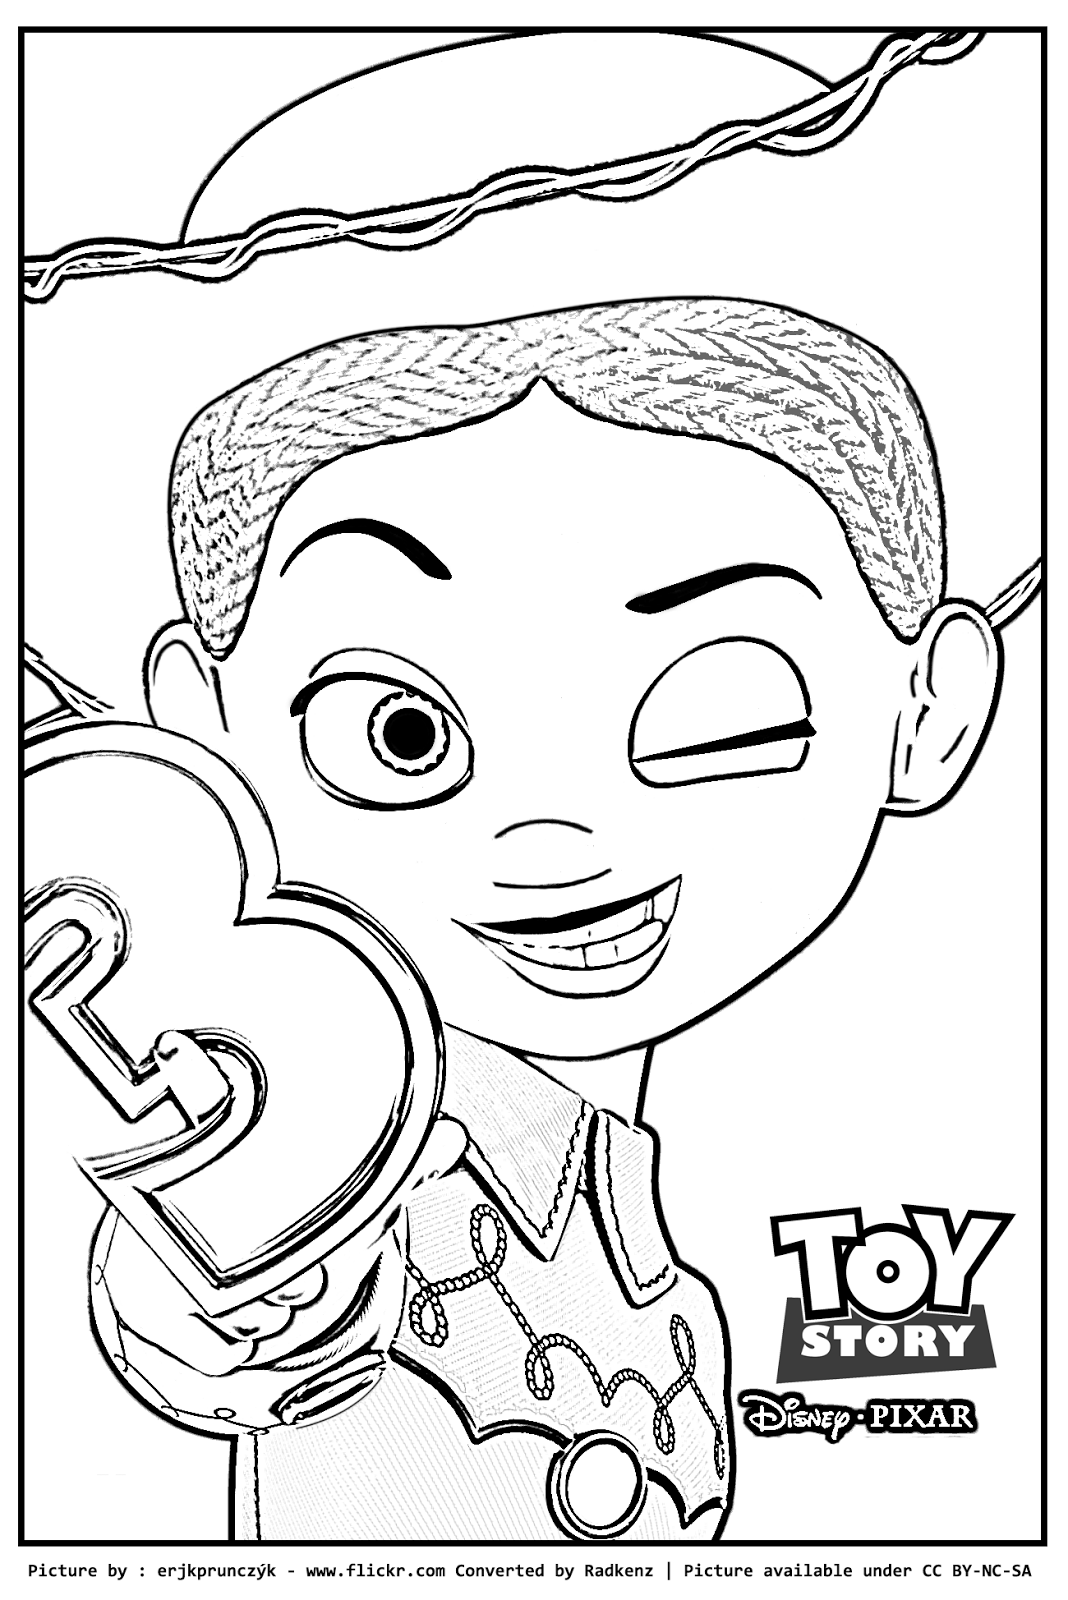 toy story coloring pages toy story jessie coloring pages coloring home toy coloring pages story